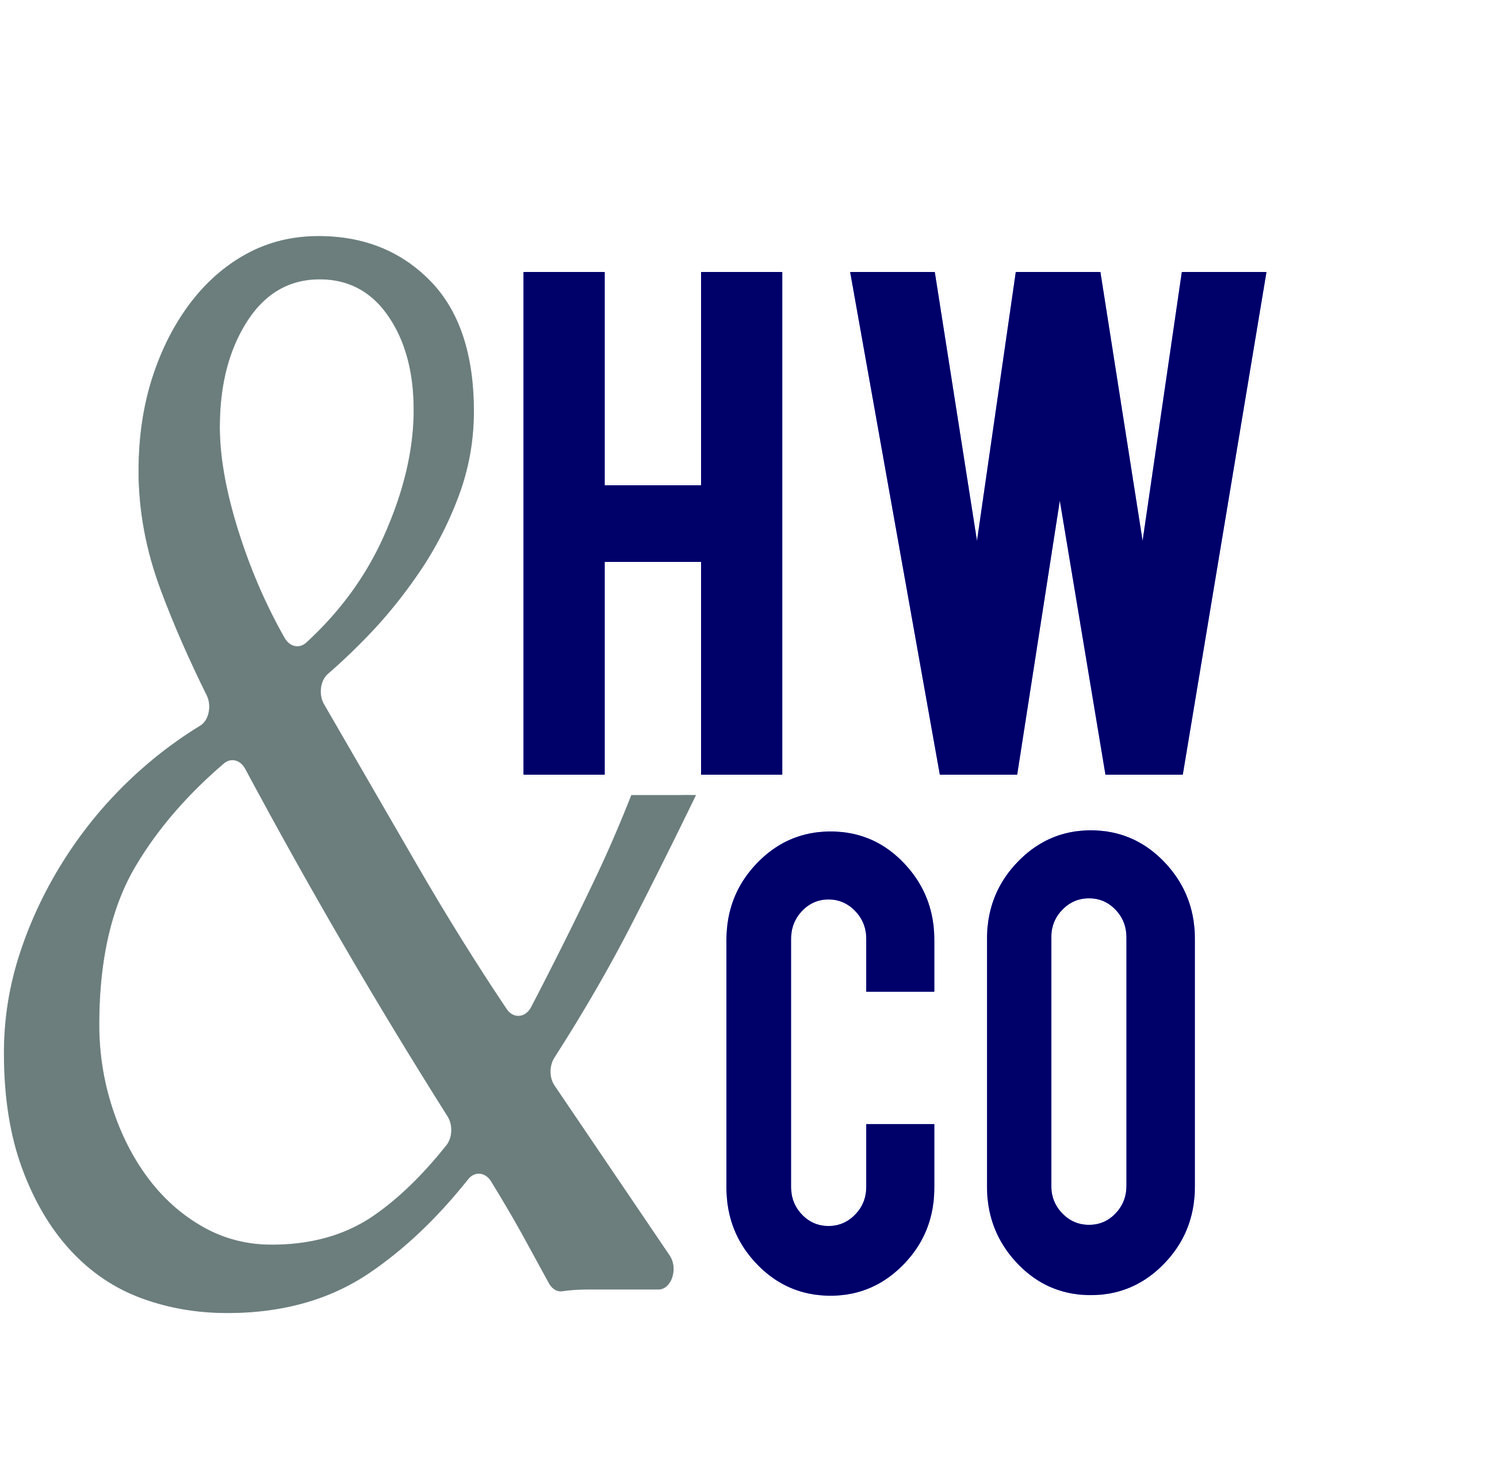 Hill-Wood & Co